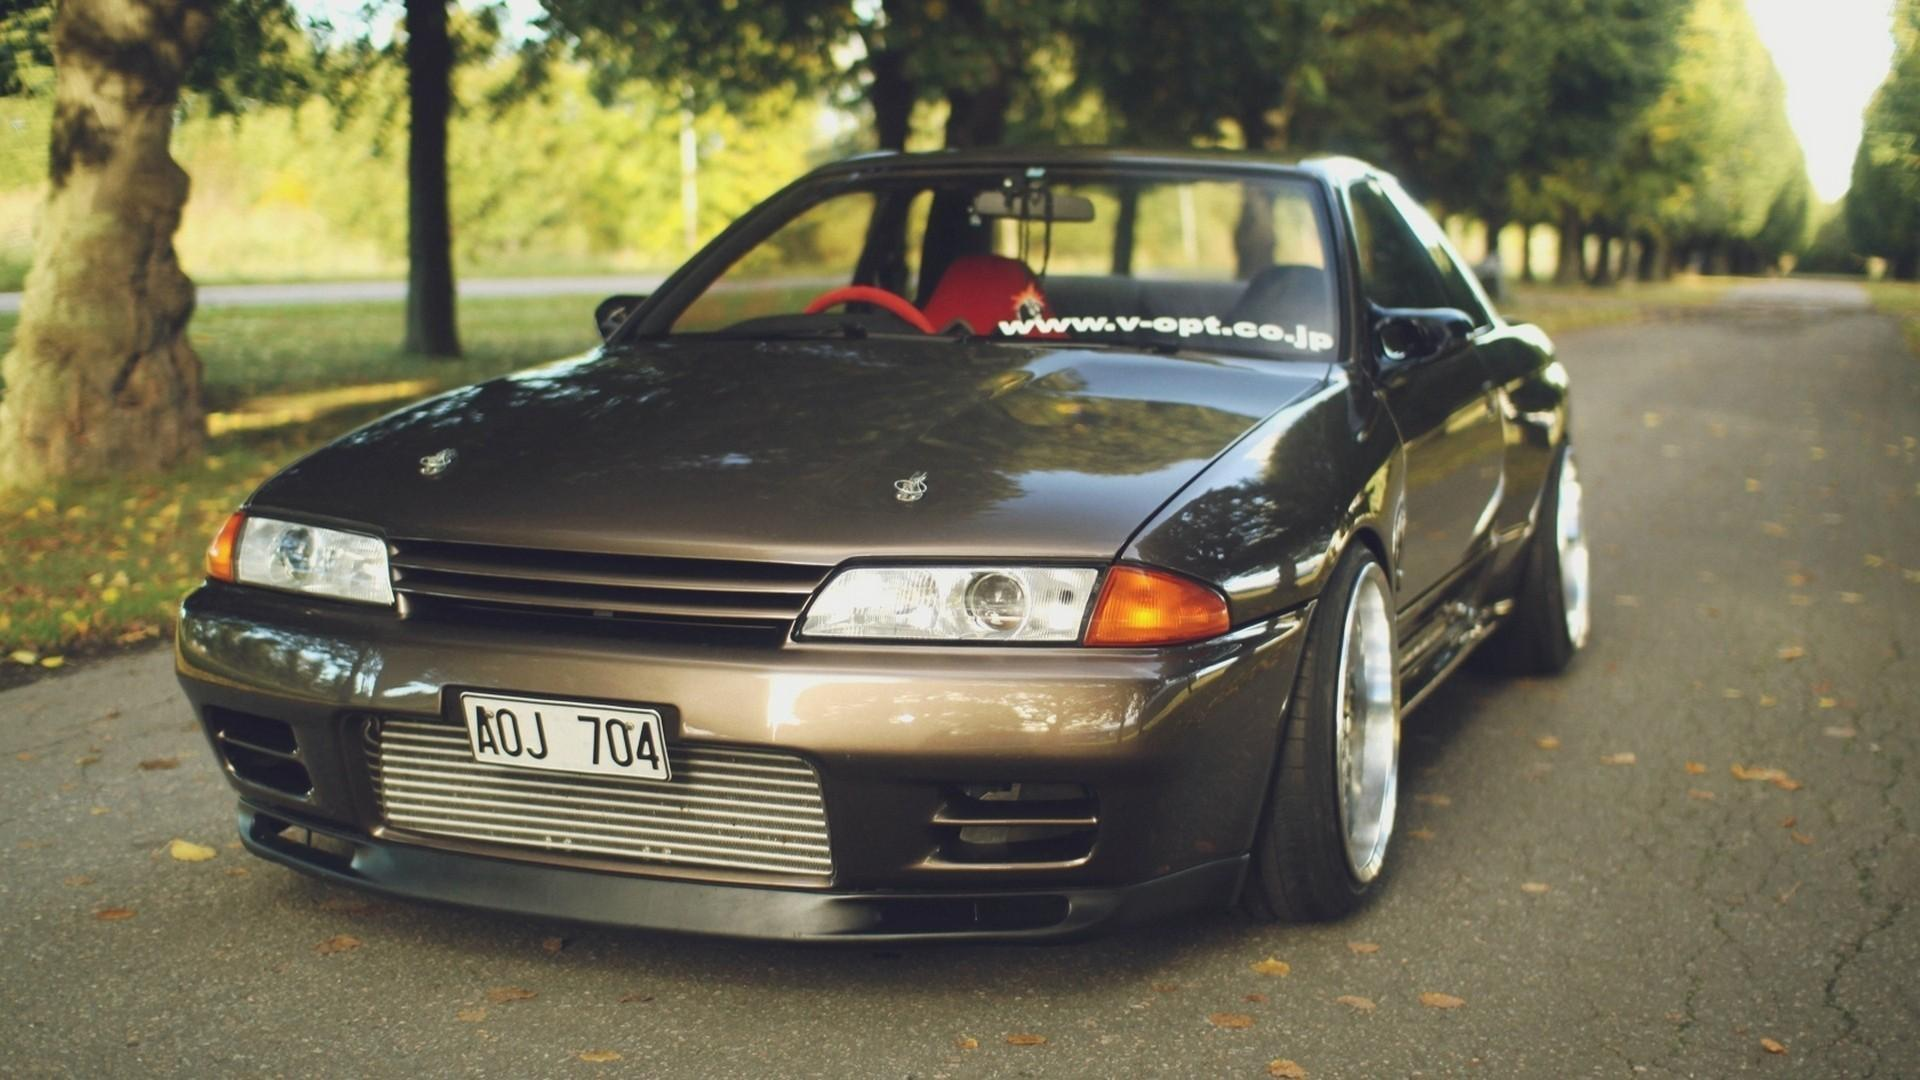 Market nissan skyline r32 gt-r cars roads wallpaper | (42026)